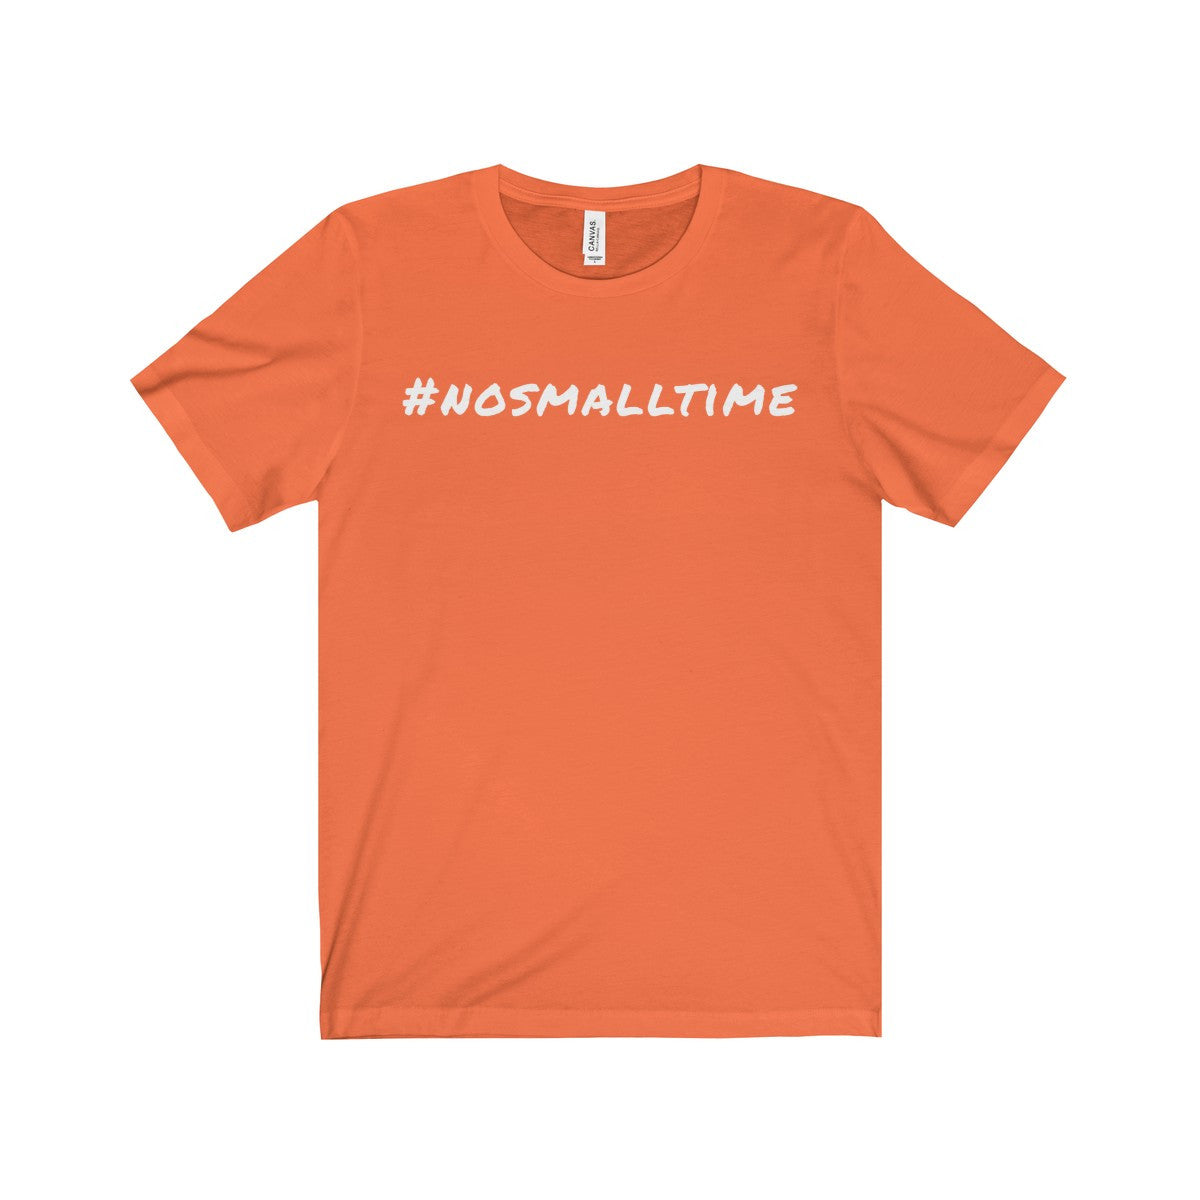 #nosmalltime Short Sleeve T-Shirt, White Print